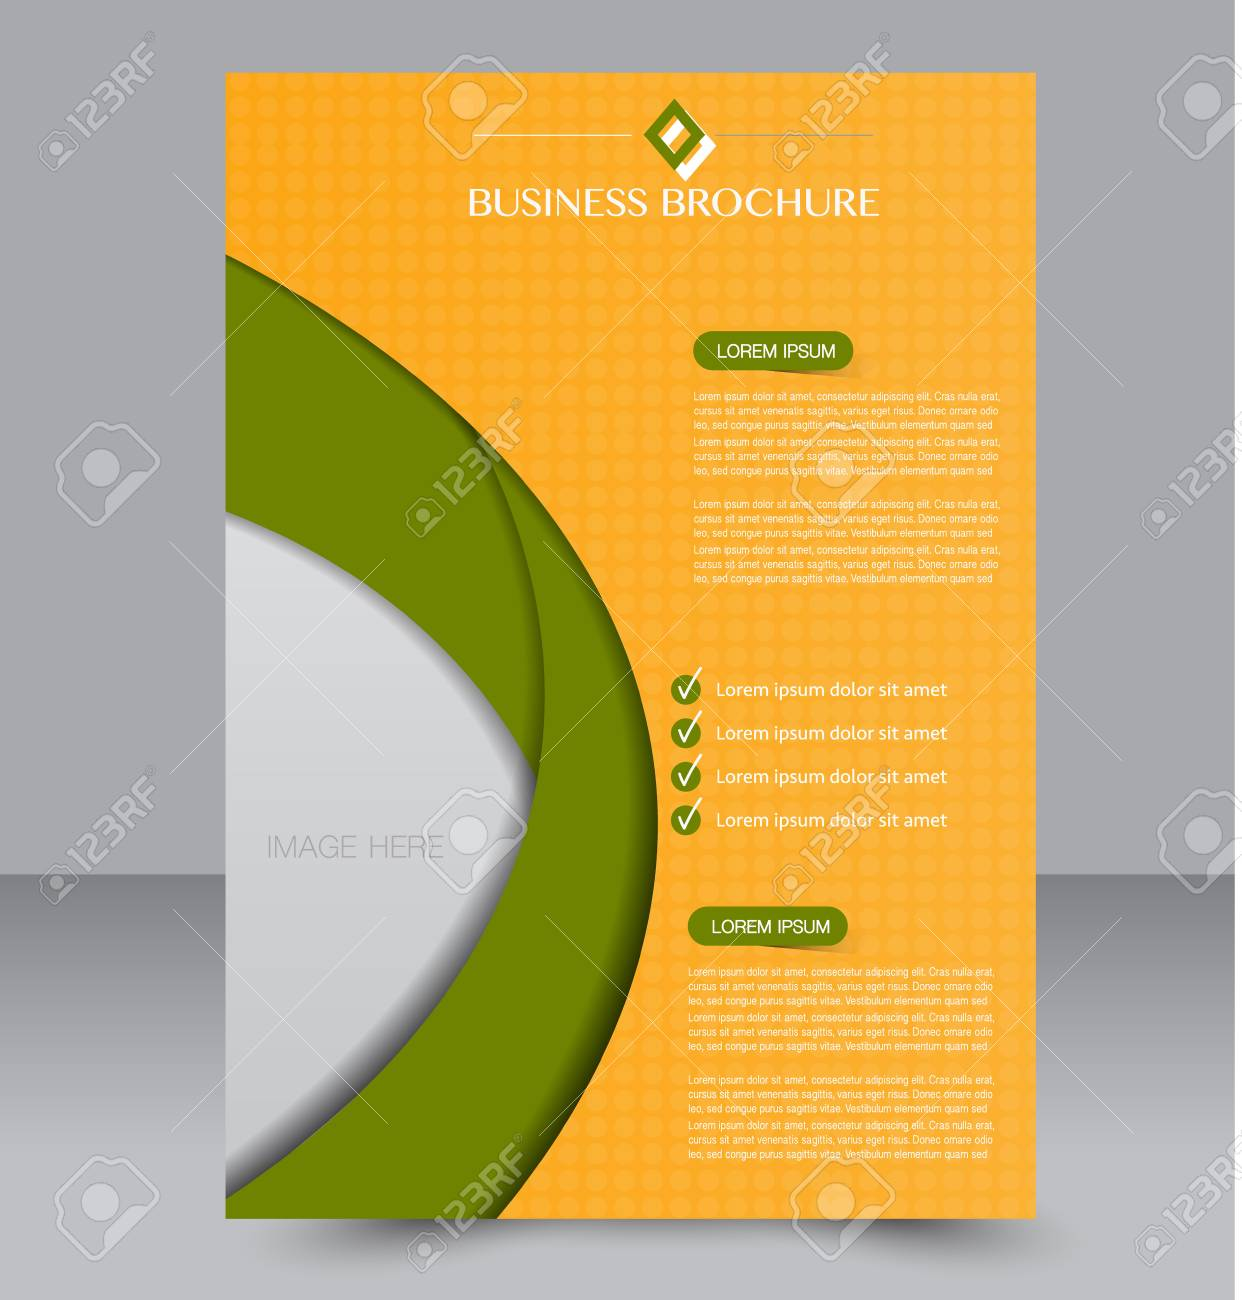 Brochure Template Business Flyer Annual Report Cover Editable